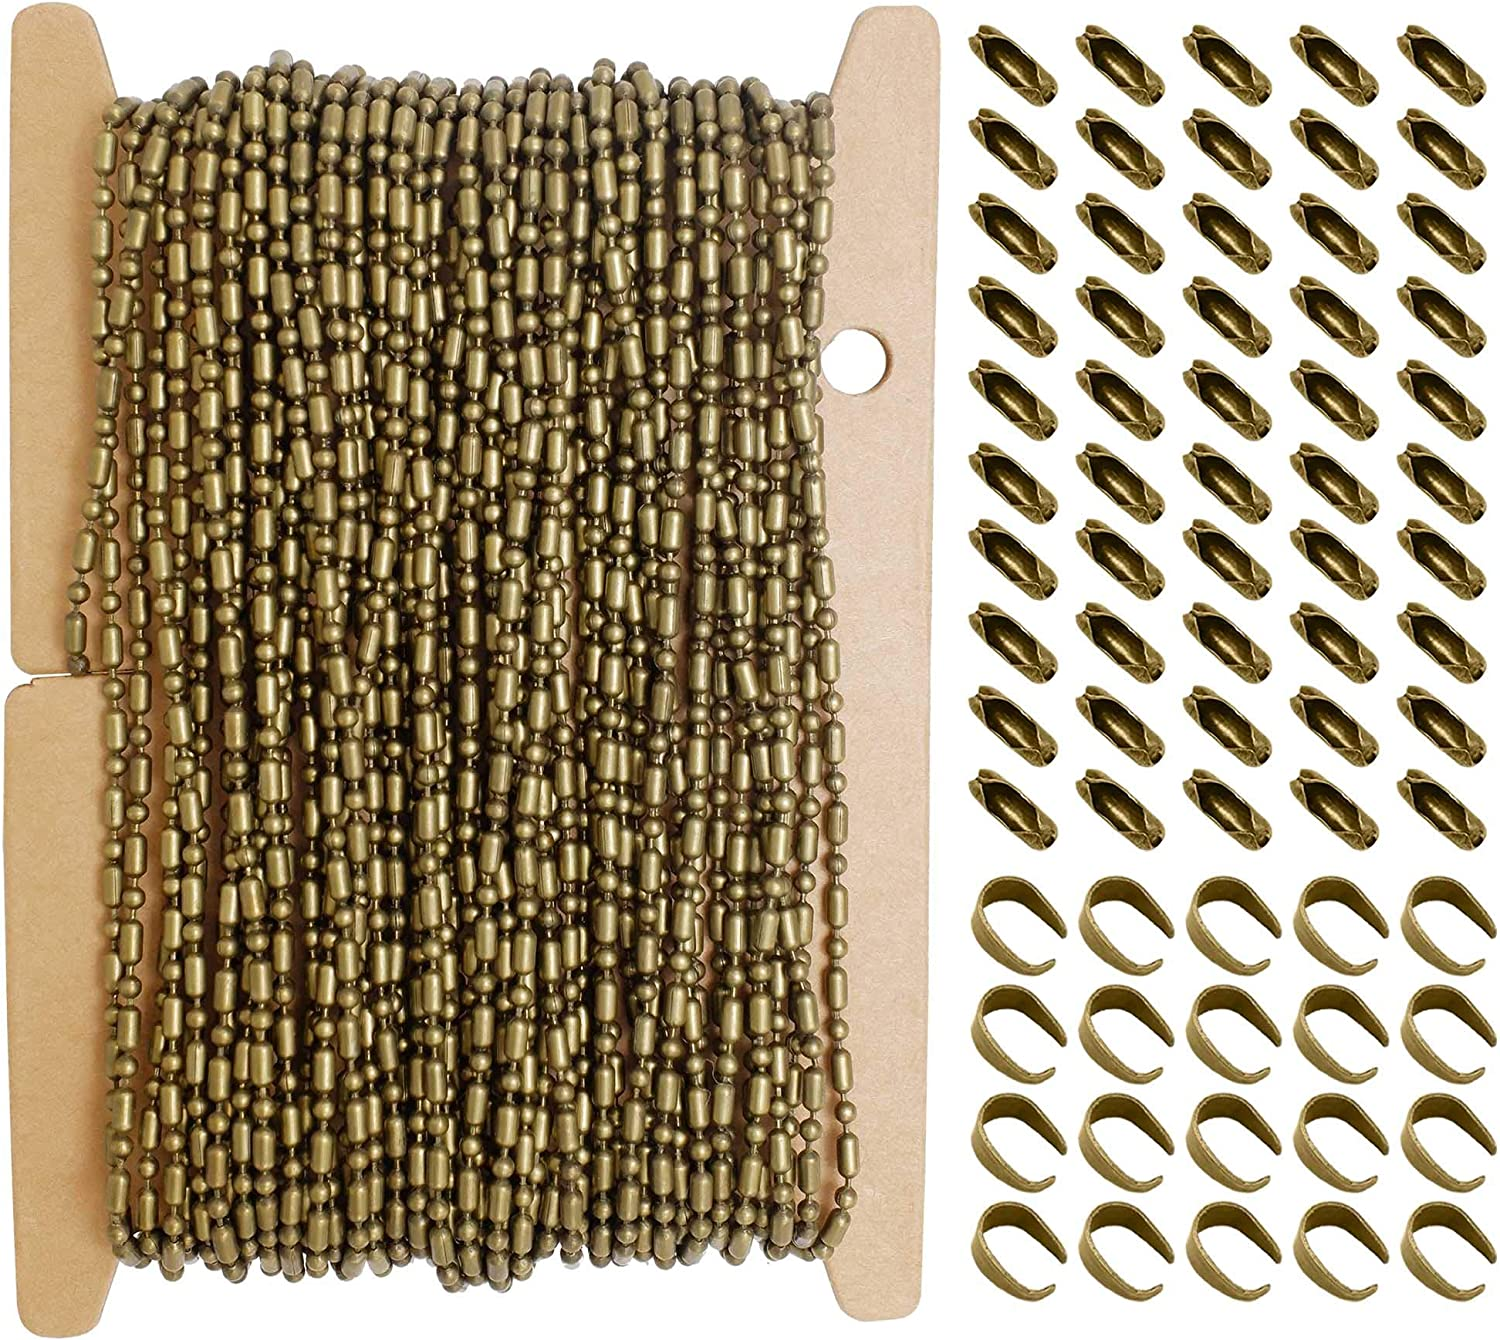 with Connector Clasps+Pinch Bails Bronze Beads Ball Chains for Jewelry Making Set 10m ZCNest 32.8 Ft Cable Link Craft Chain Findings for Necklace Bracelet Earring DIY Wide 1.5mm/_2076-B